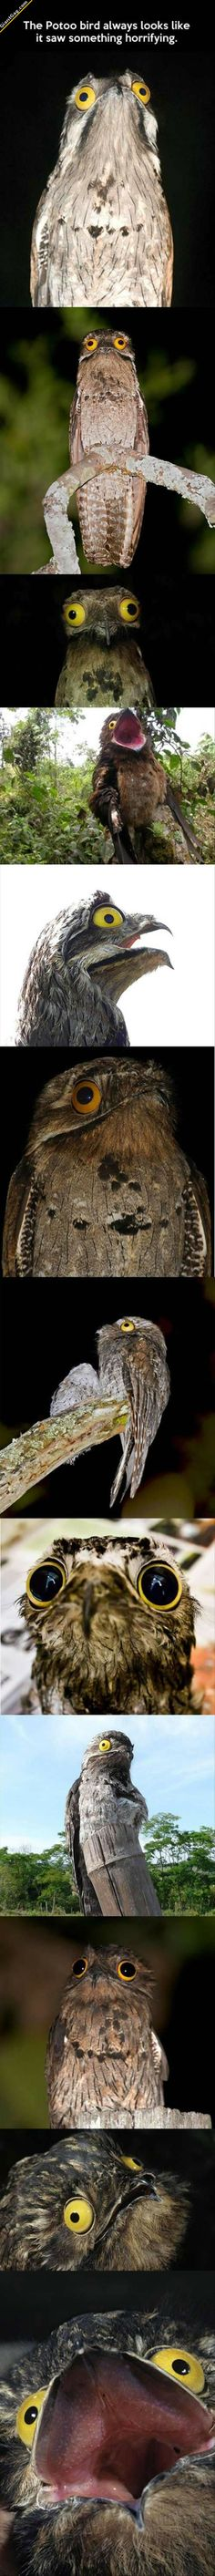 The Potoo Bird Always Looks Like It Saw Something Horrifying | Click the link to view full image and description : )